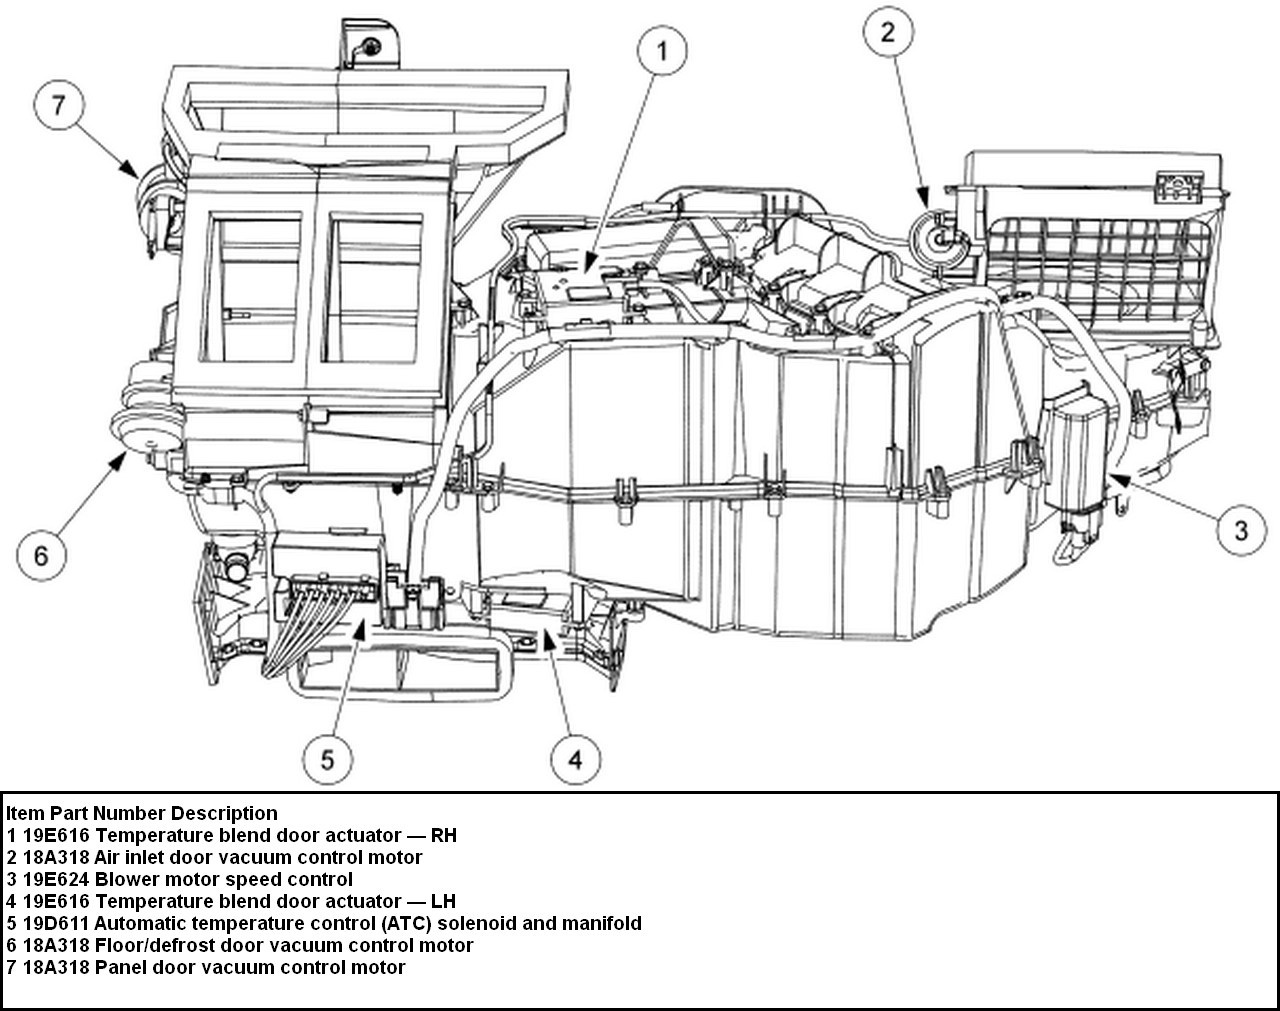 2008 Ford Expedition Fuel System Wiring Diagram | Wiring Library